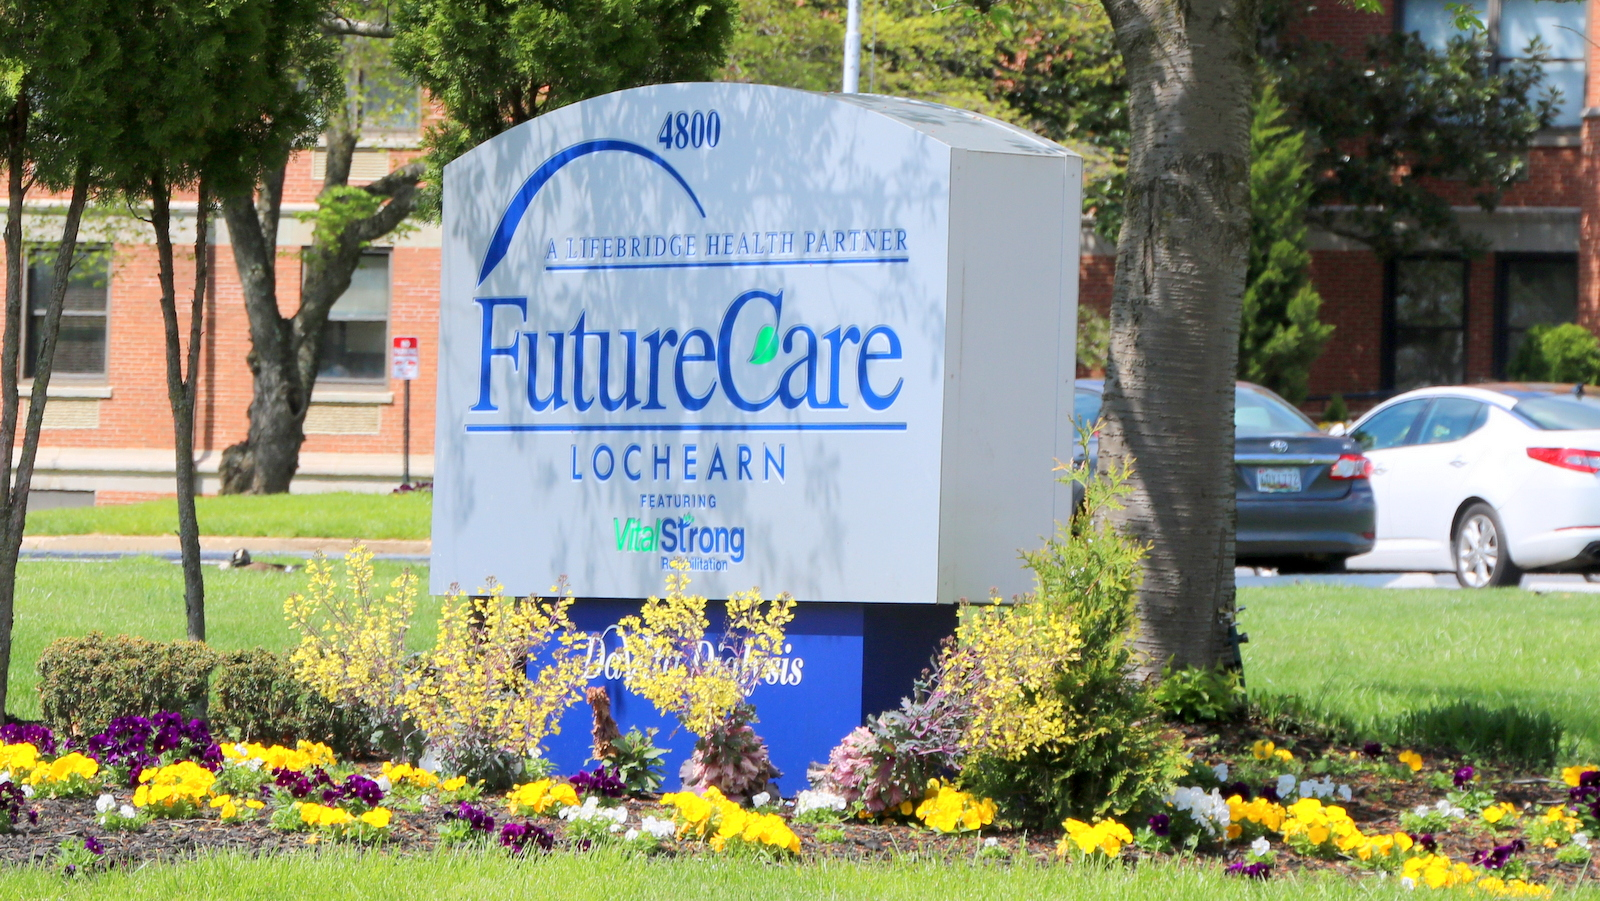 FutureCare's Lochearn location where a major COVID-19 outbreak has been reported. (Louis Krauss)